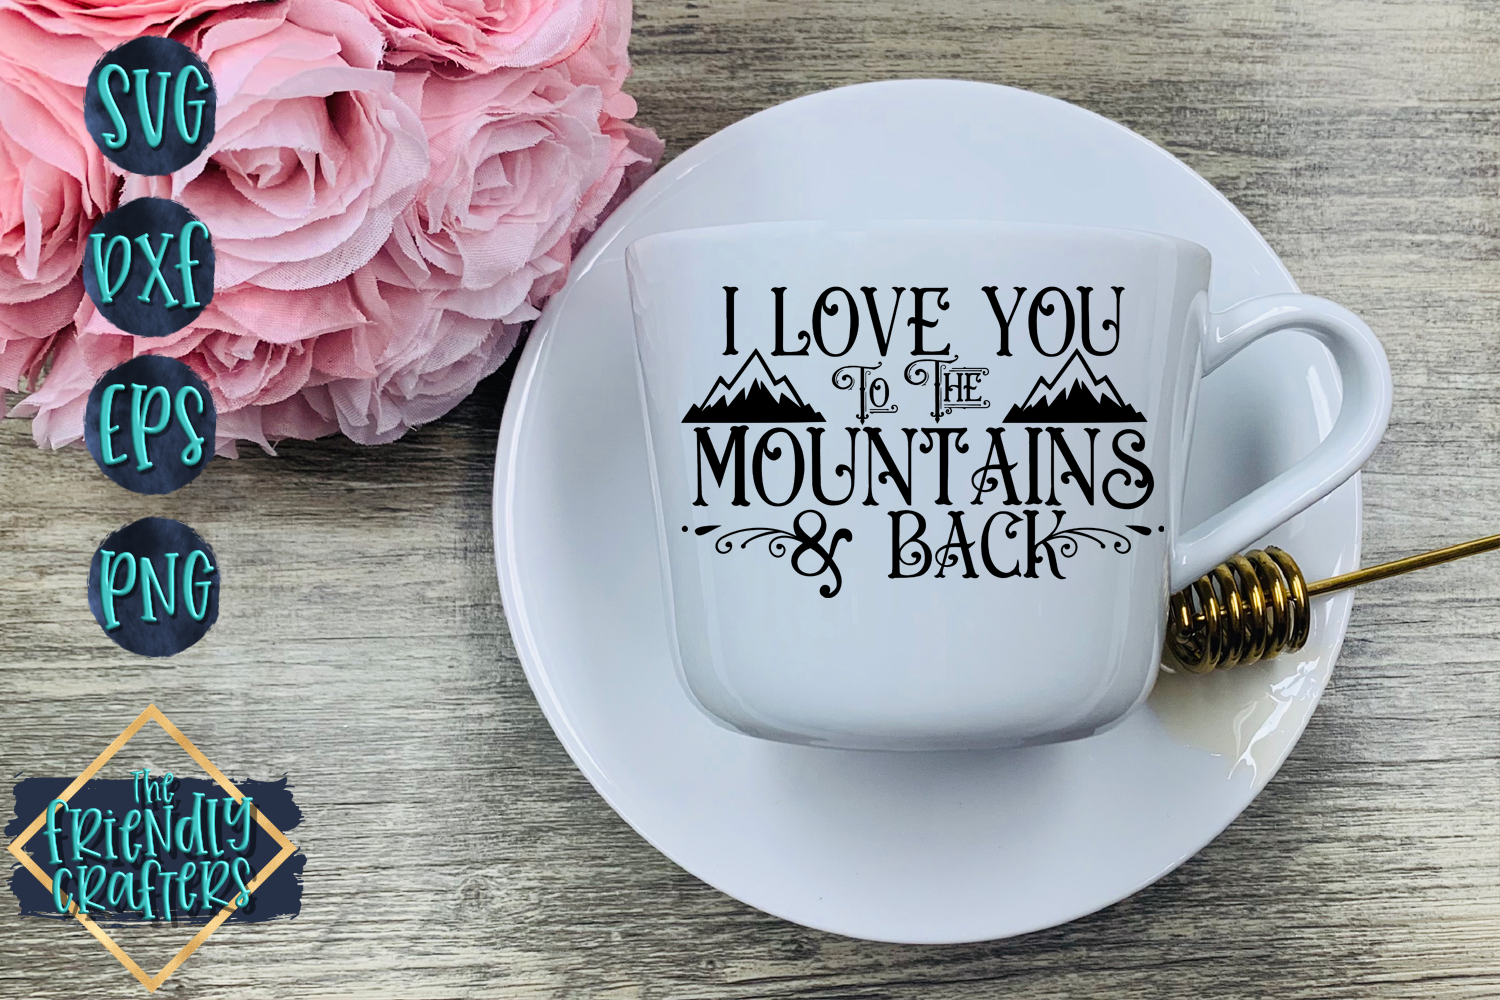 I Love You To The Mountains & Back example image 1